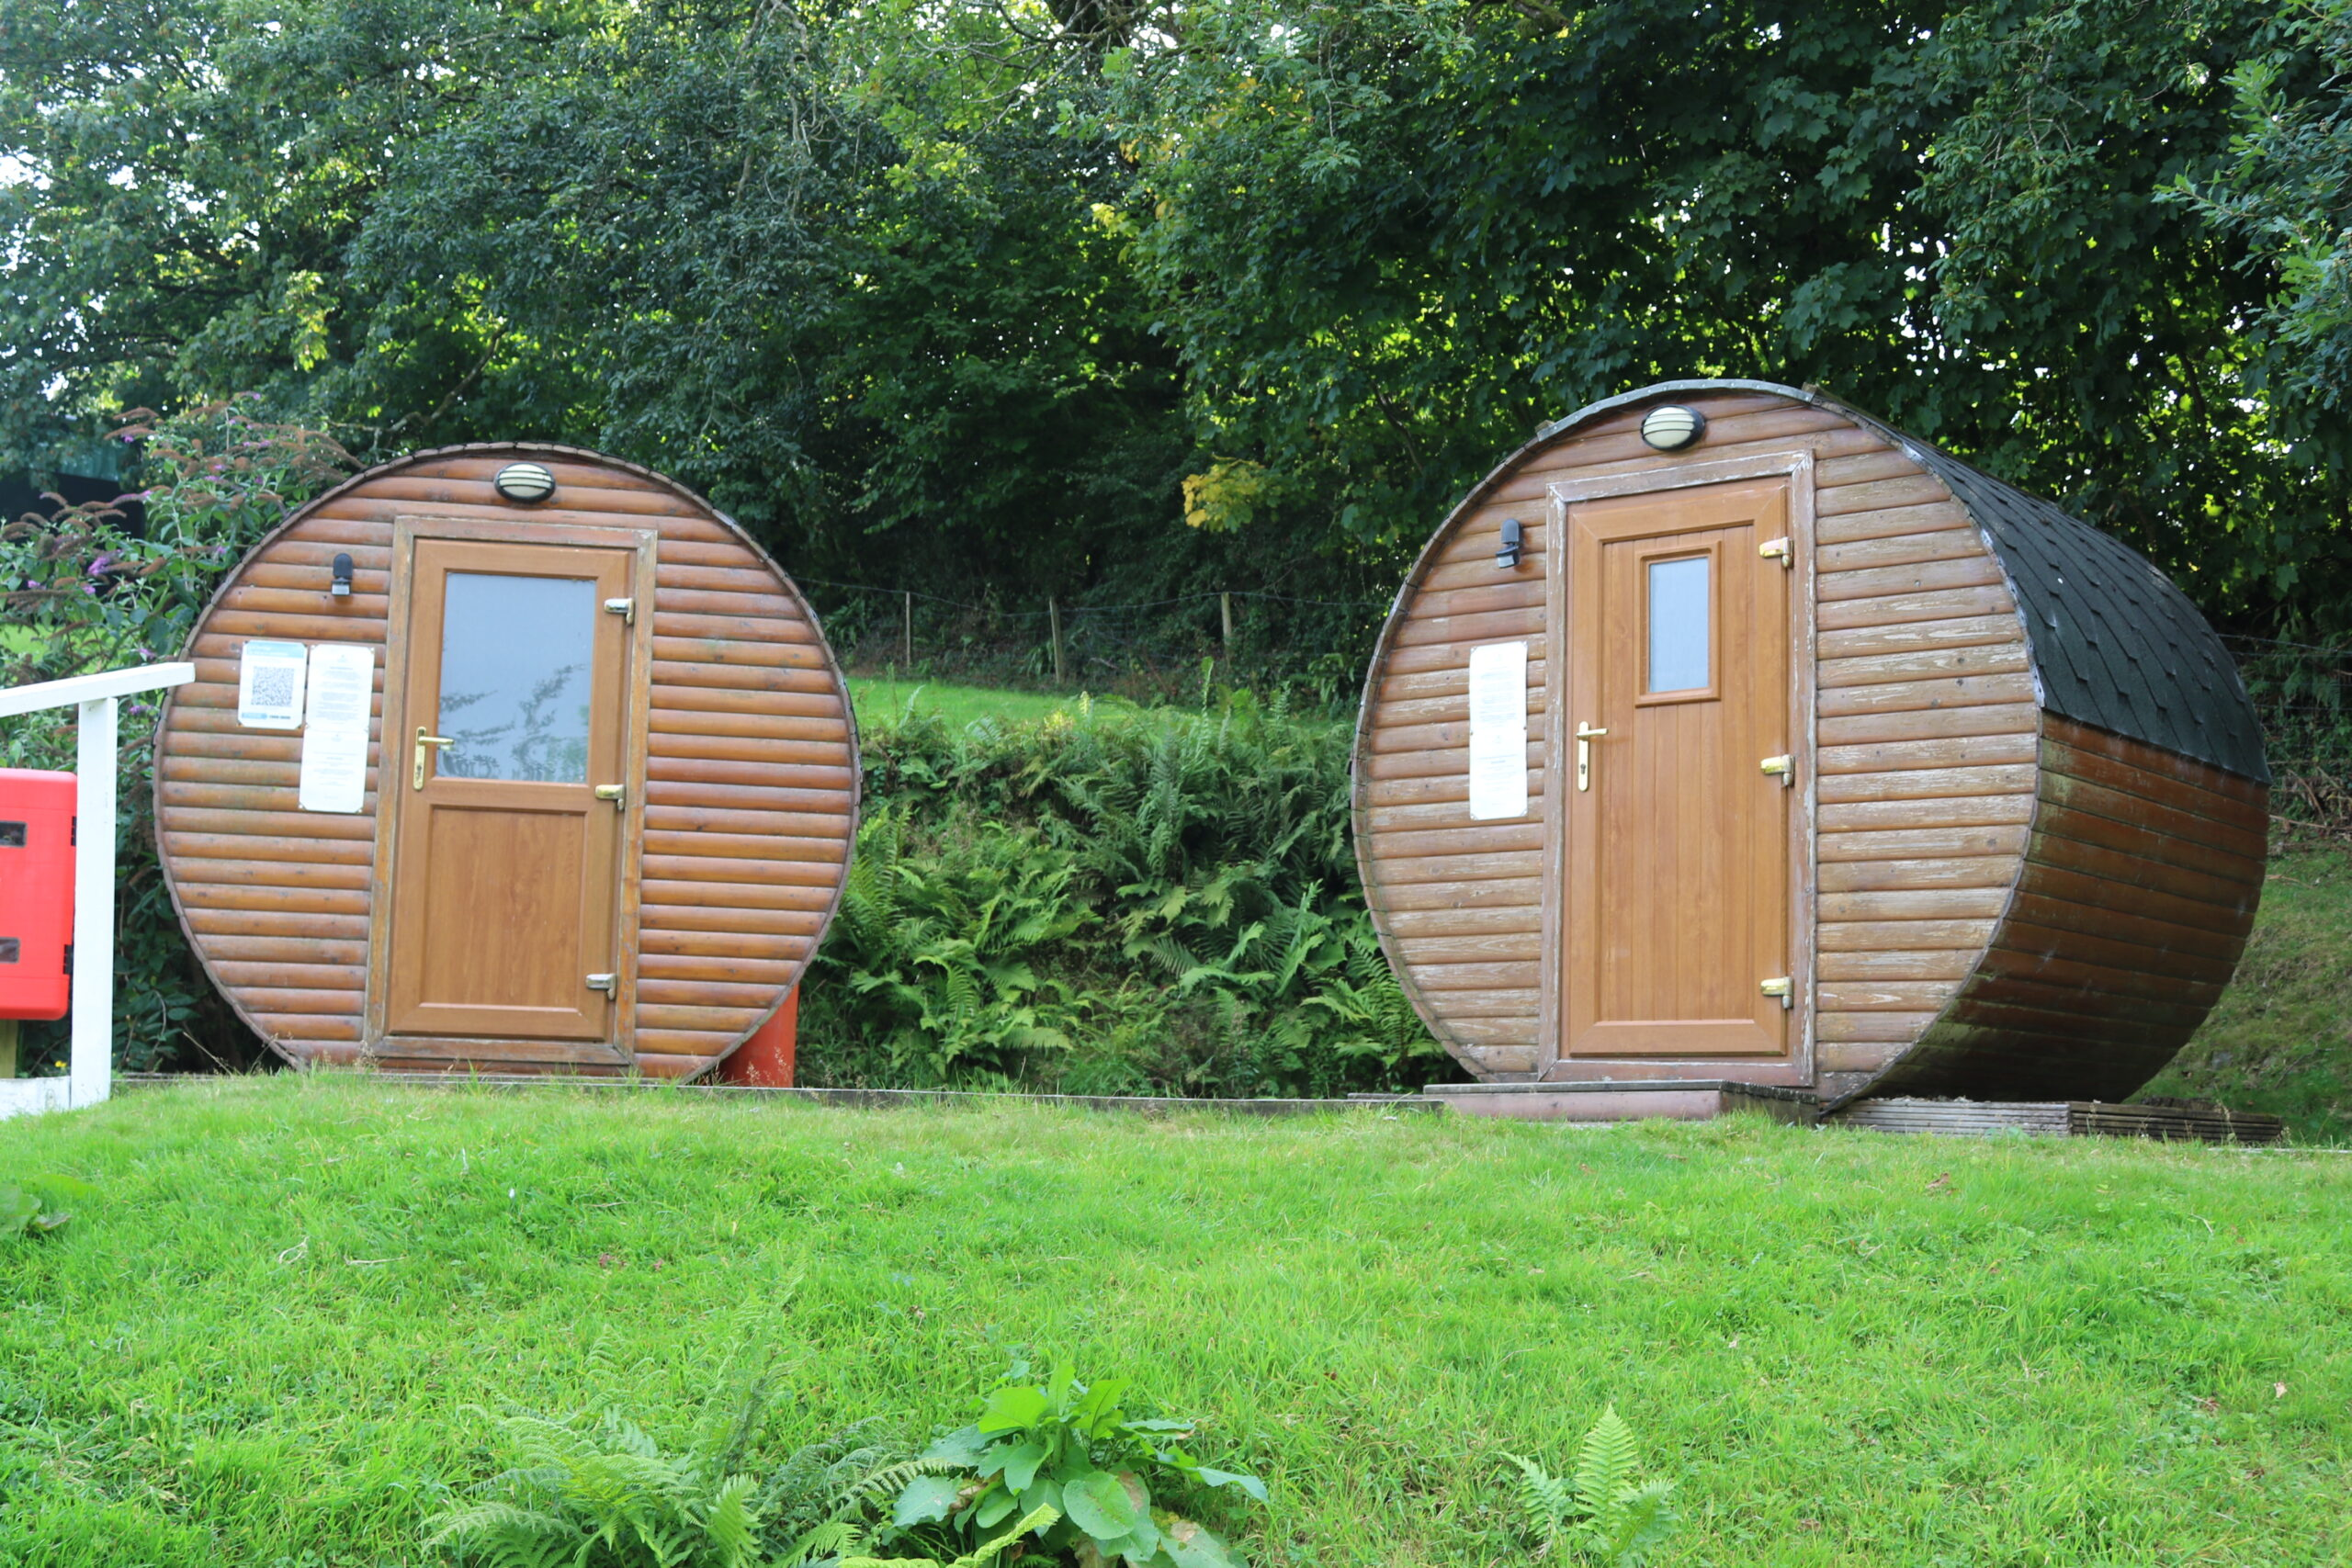 The hobbit huts house our toilet and shower